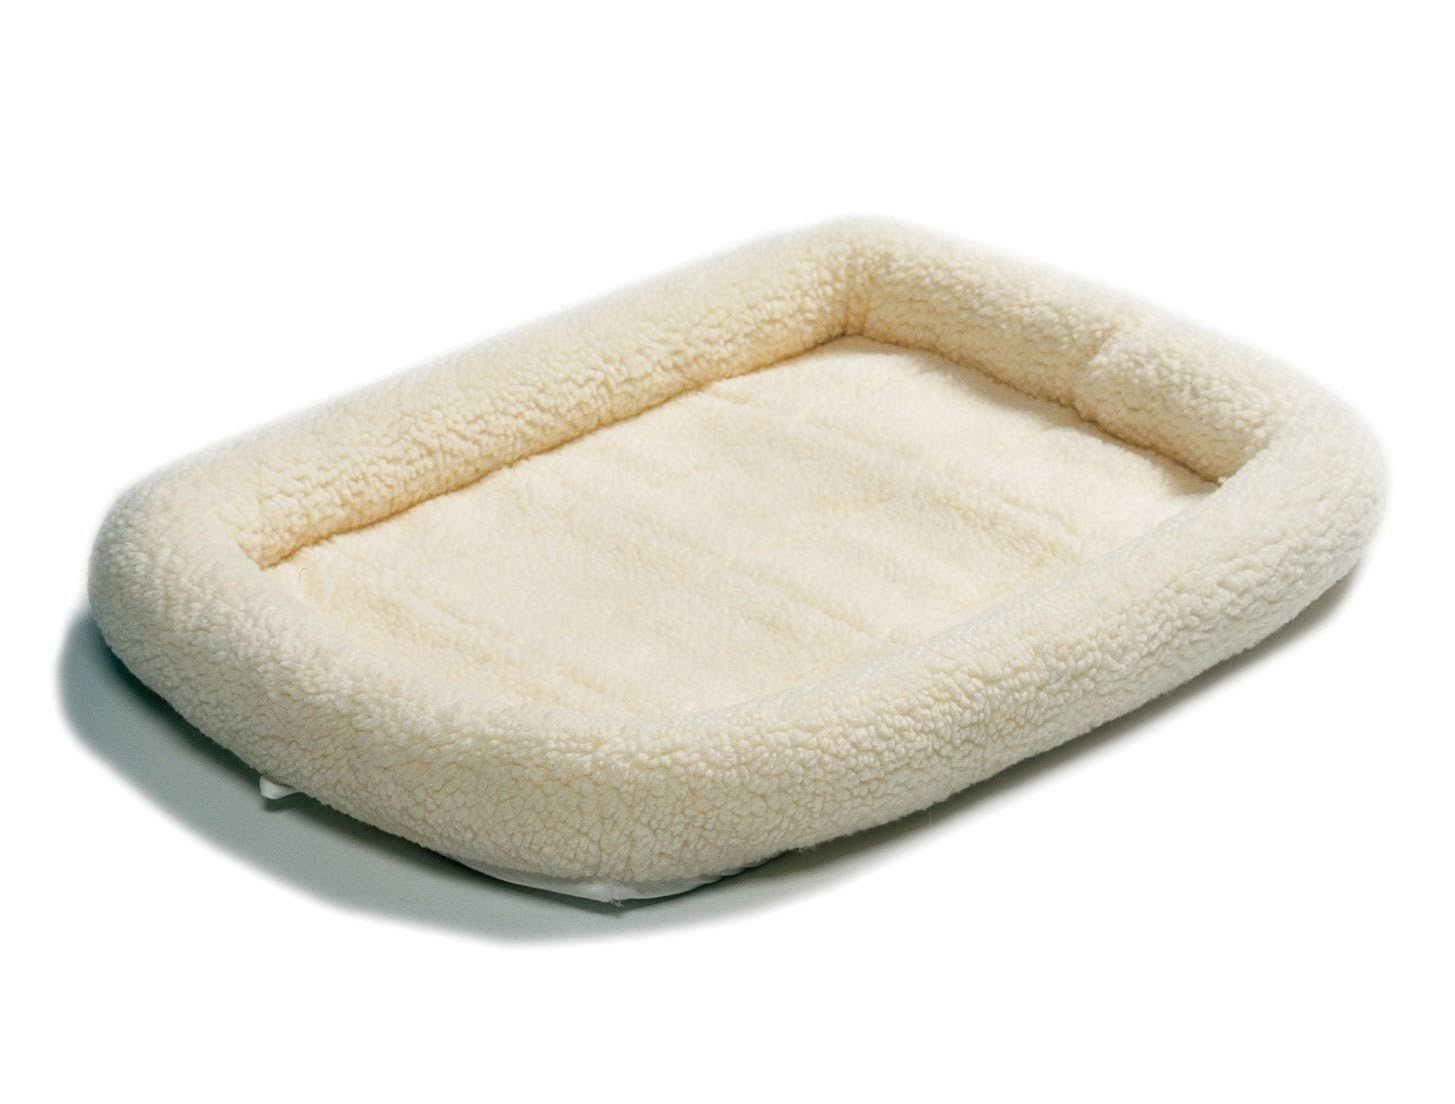 Midwest Pets Quiet Time Fleece Pet Bed - 48 x 30 in